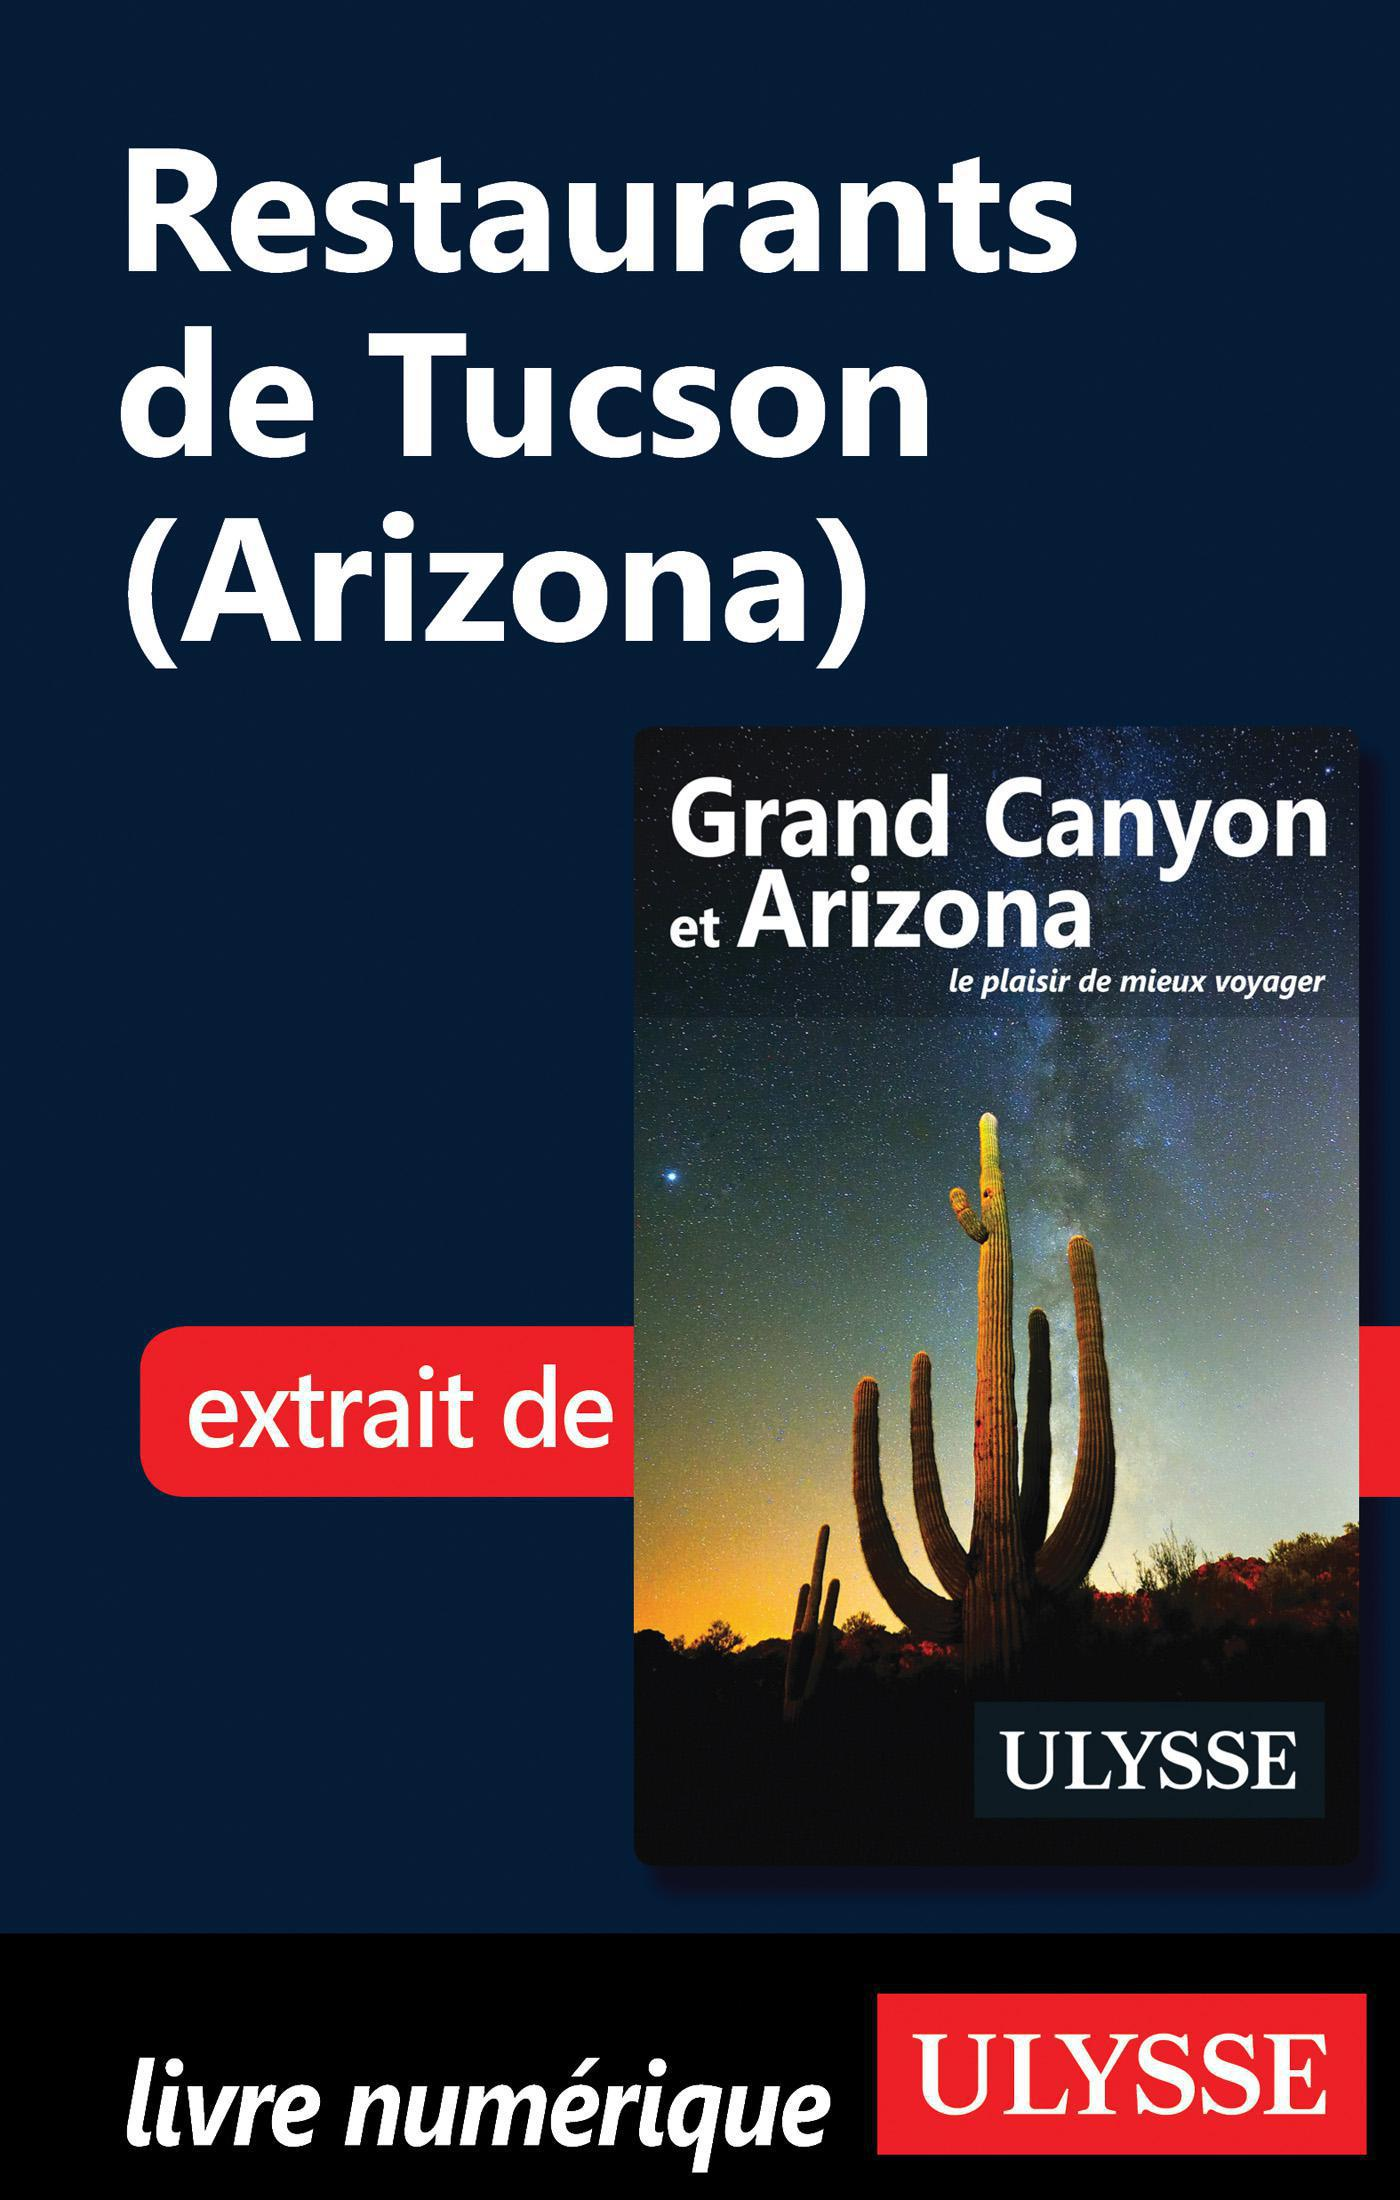 Restaurants de Tucson (Arizona)